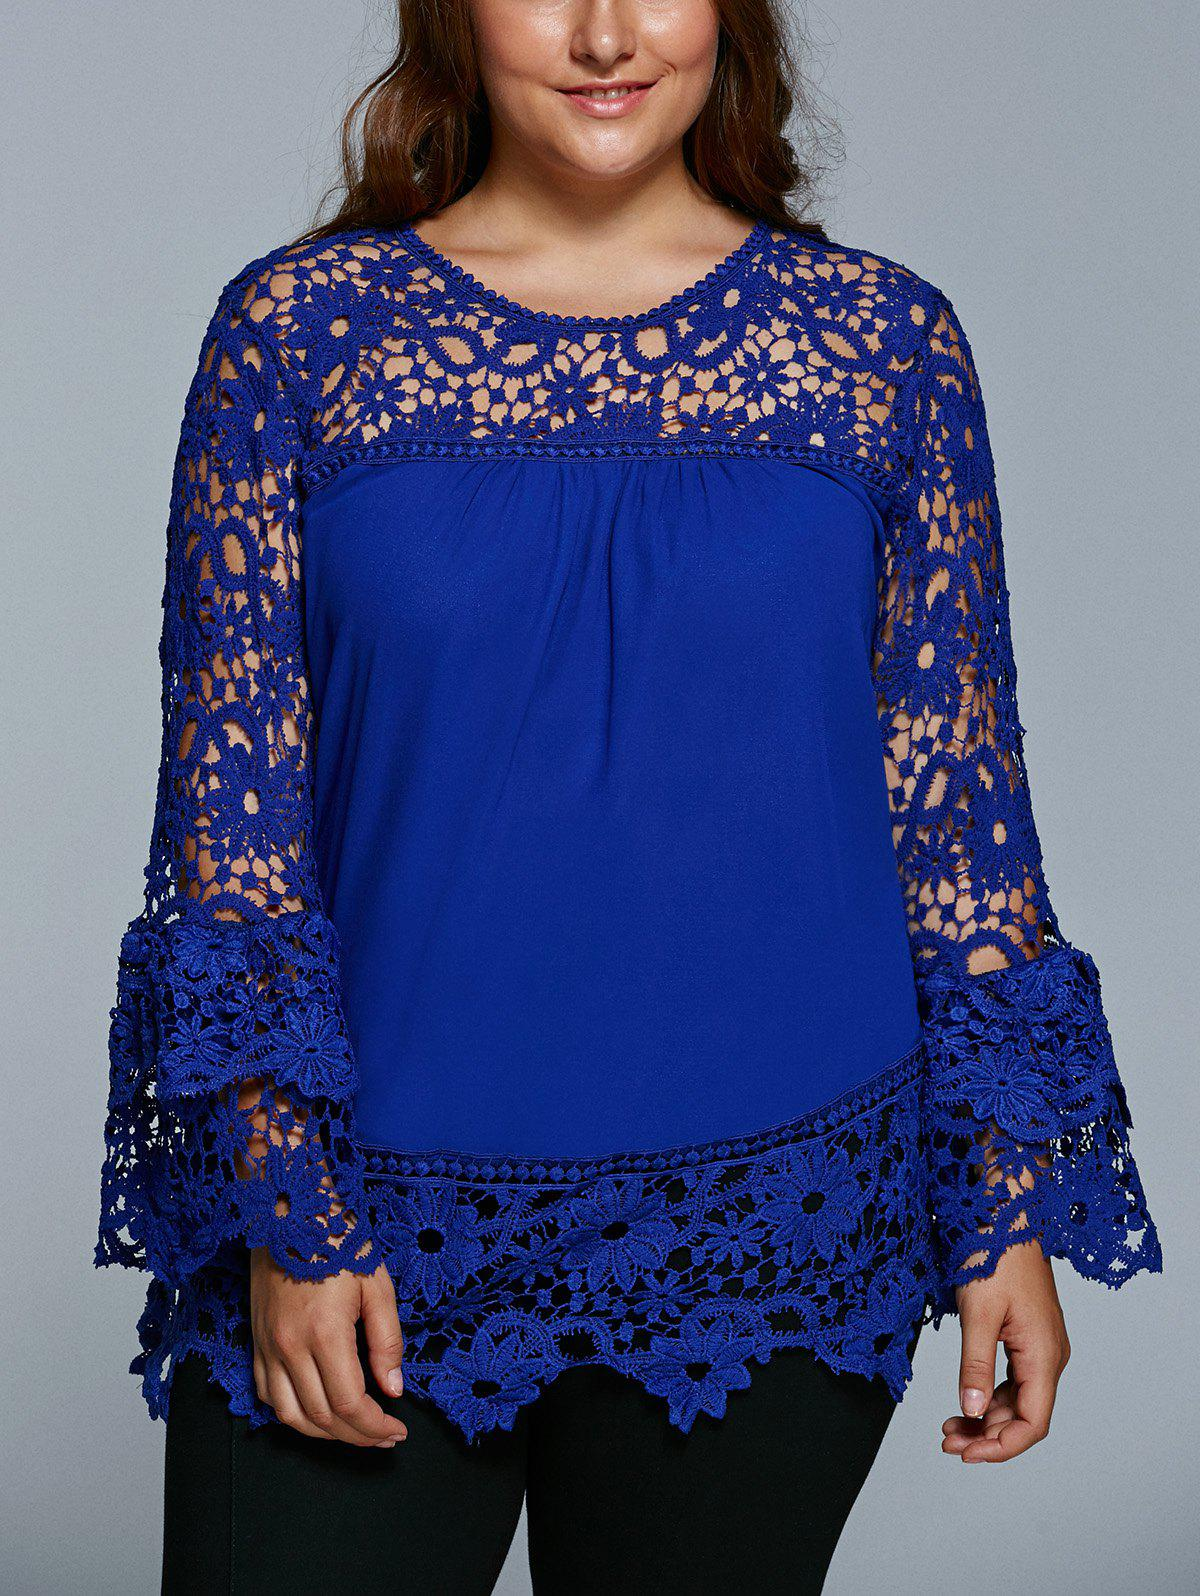 Lace Spliced Hollow Out Plus Size BlouseWOMEN<br><br>Size: 2XL; Color: SAPPHIRE BLUE; Material: Lace,Polyester; Shirt Length: Regular; Sleeve Length: Full; Collar: Jewel Neck; Style: Fashion; Season: Fall,Spring; Pattern Type: Patchwork; Weight: 0.3500kg; Package Contents: 1 x Blouse;